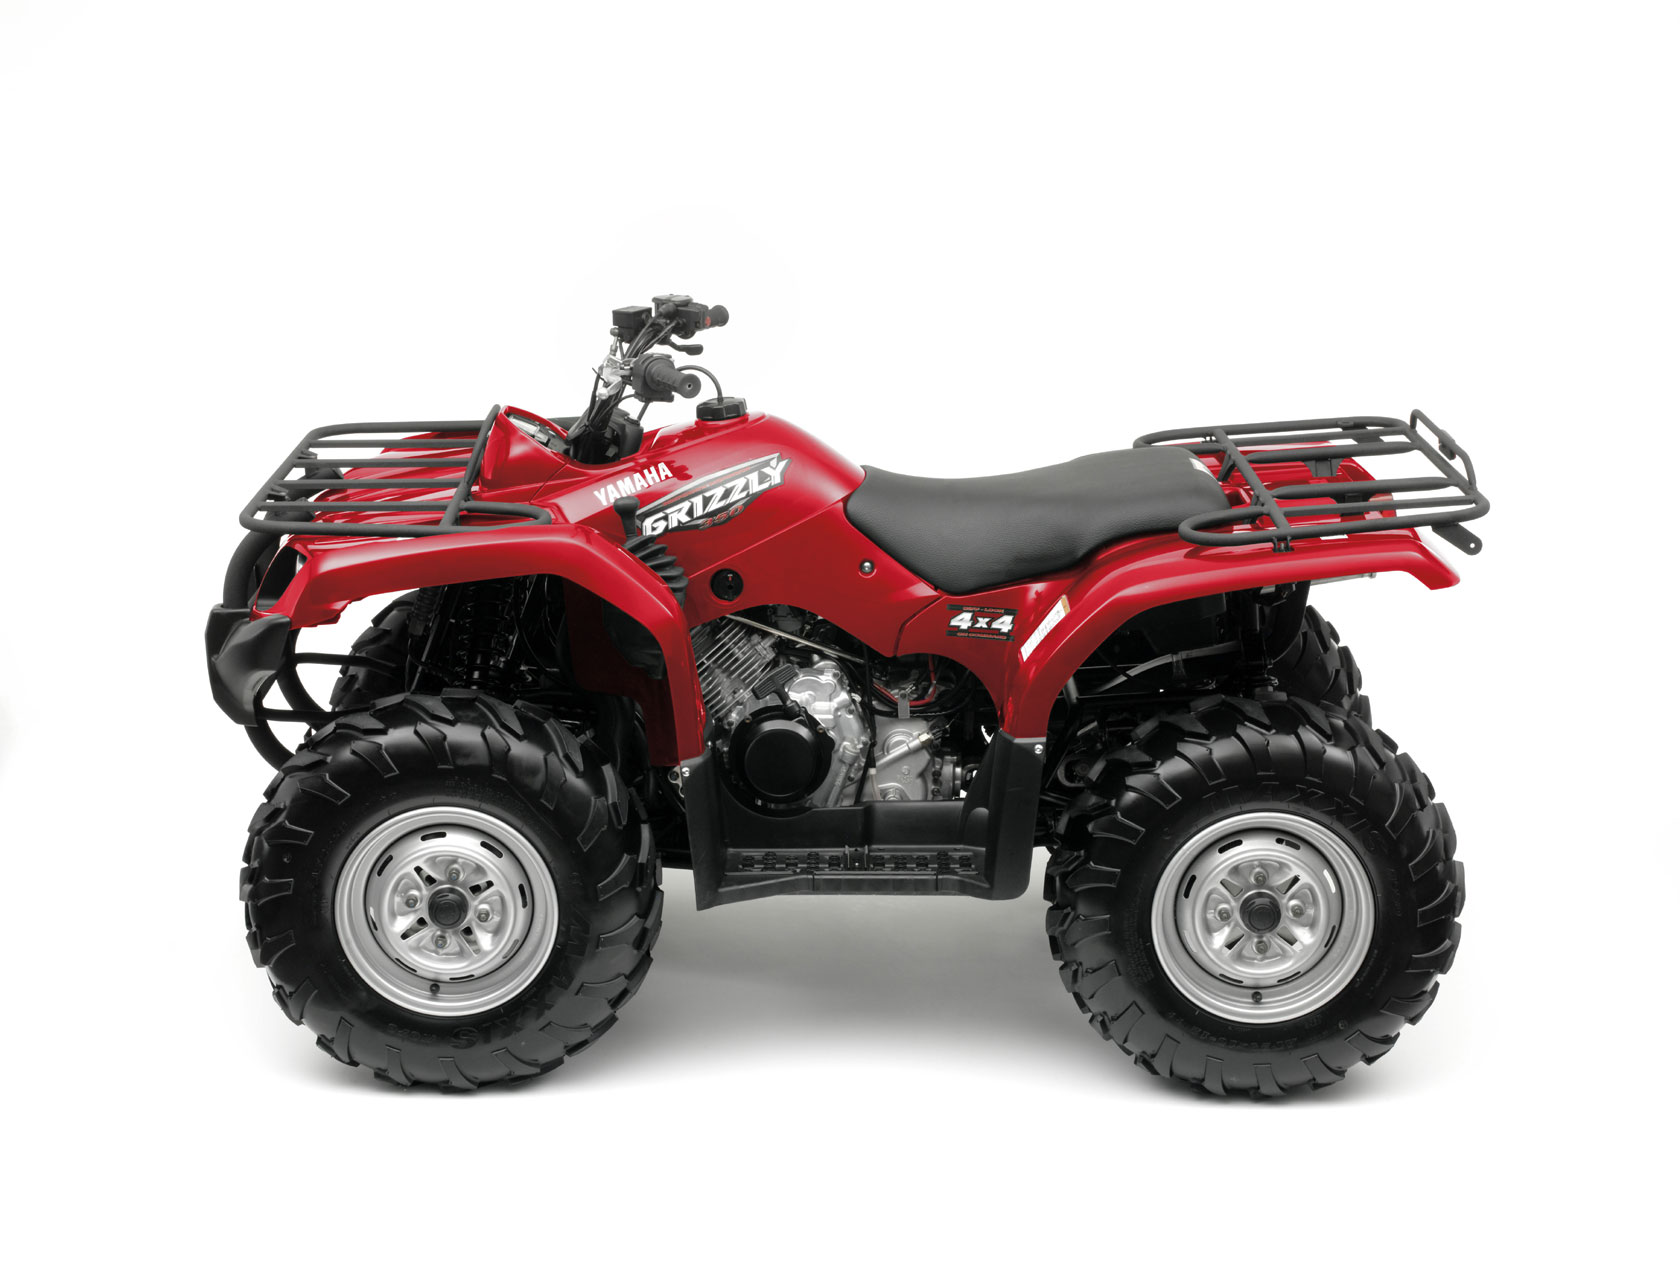 yamaha grizzly 350 4x4 irs specs 2008 2009 autoevolution